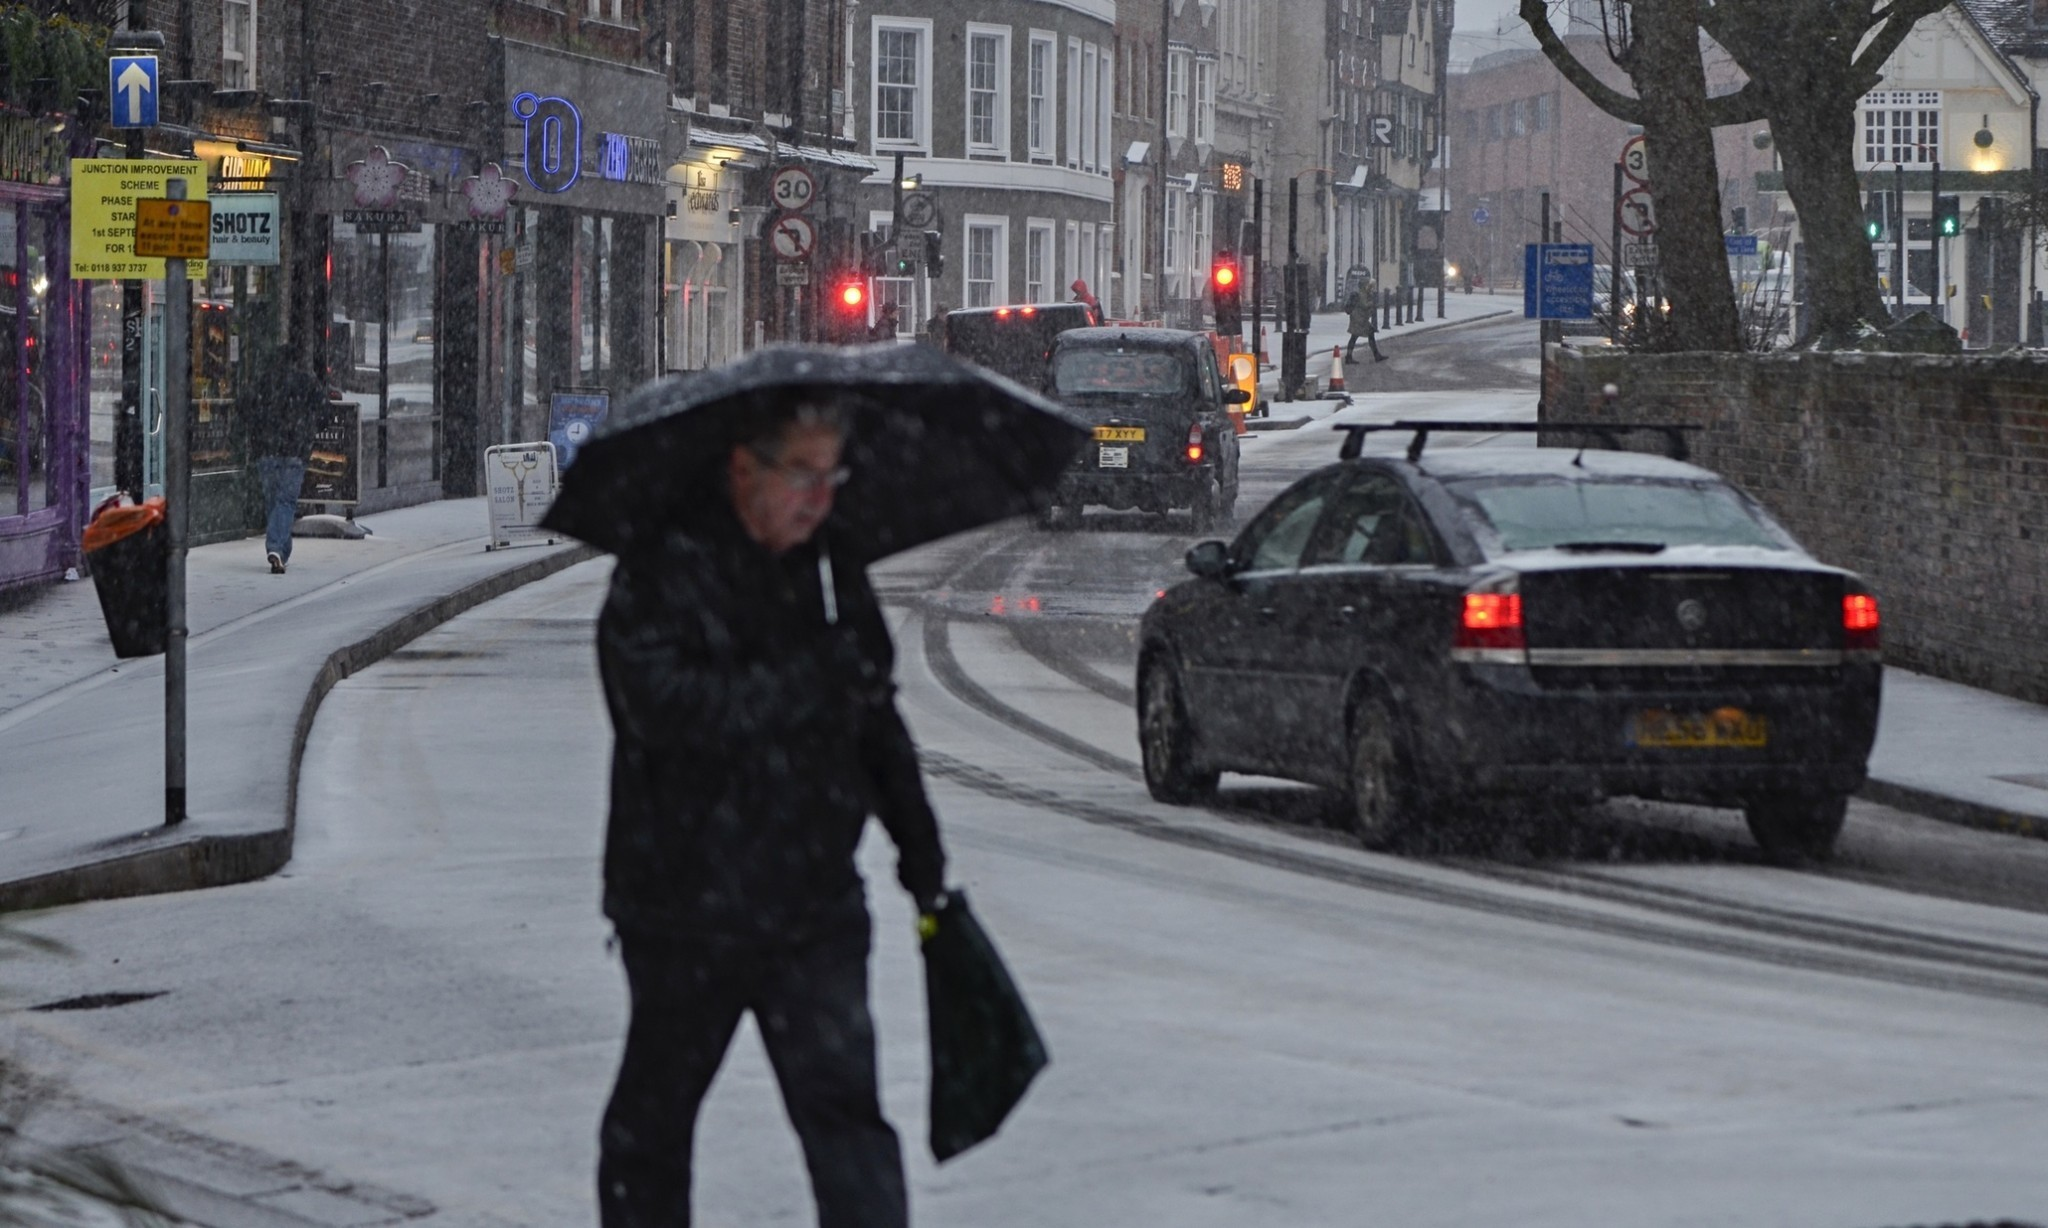 UK braces for further travel chaos as more snow blankets England